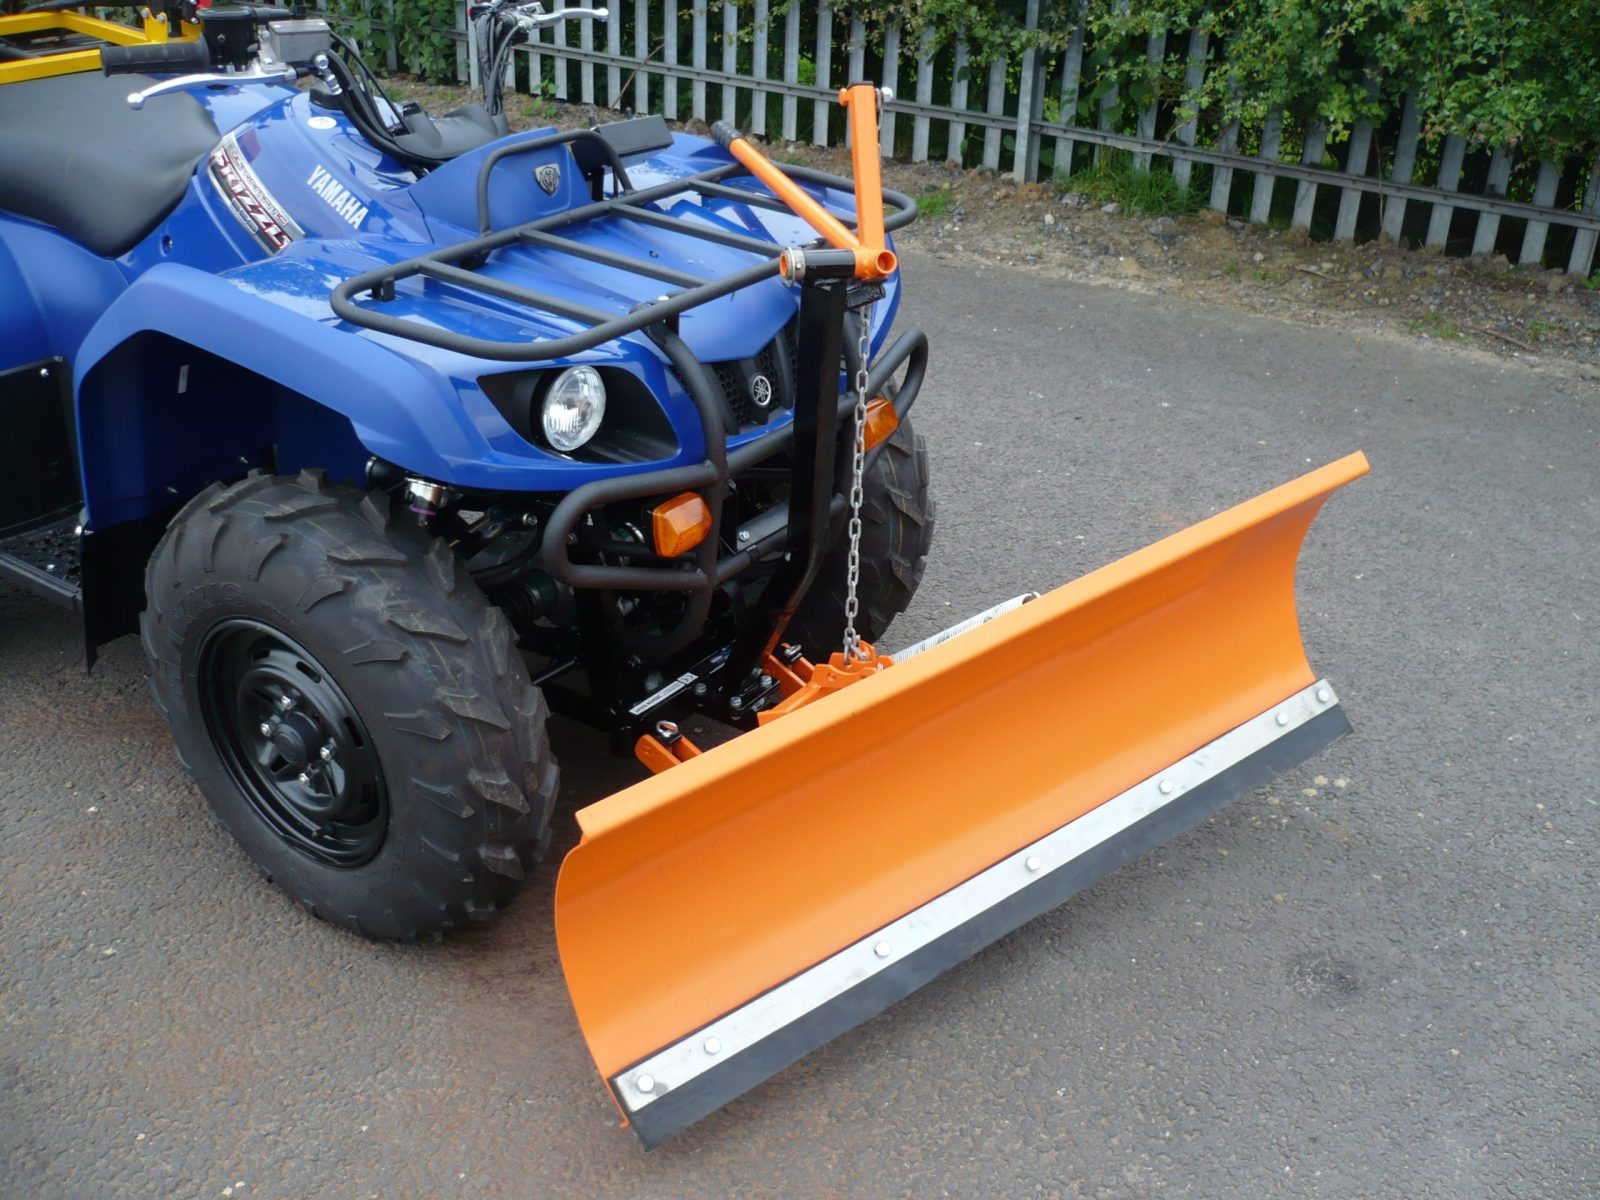 This Drop Gritter/Snowplough ATV Quad Bike Combi is ideal for winter maintenance use in locations such as foot paths, car parks, education and retail sites